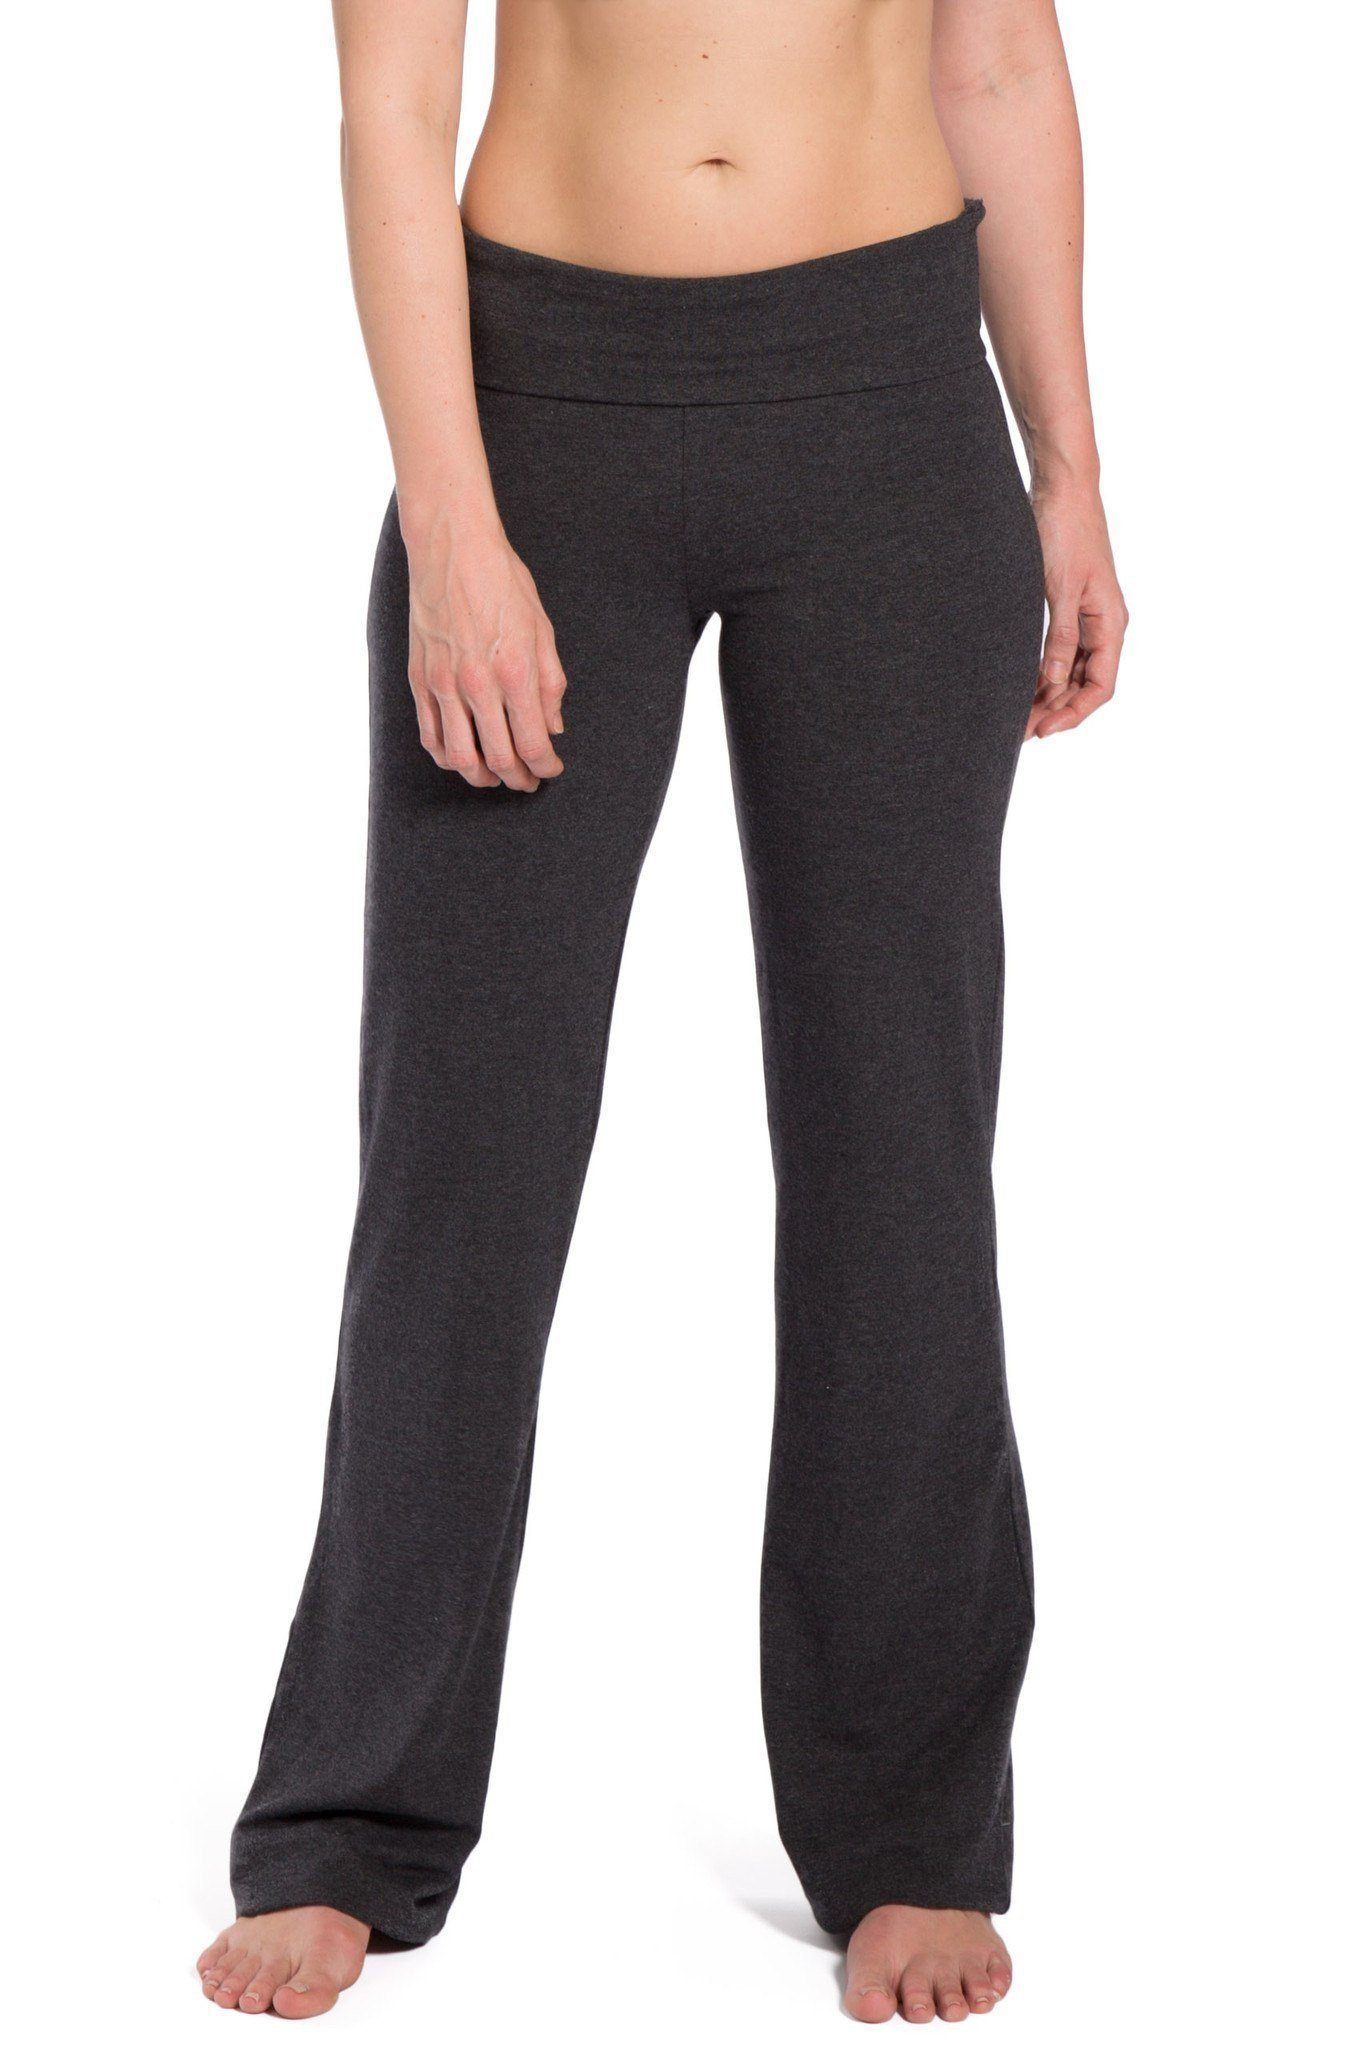 d0d5076dcb7c76 Women's EcoFabric™ Boot Leg Yoga Pant with Fold Over Waistband - Fishers  Finery